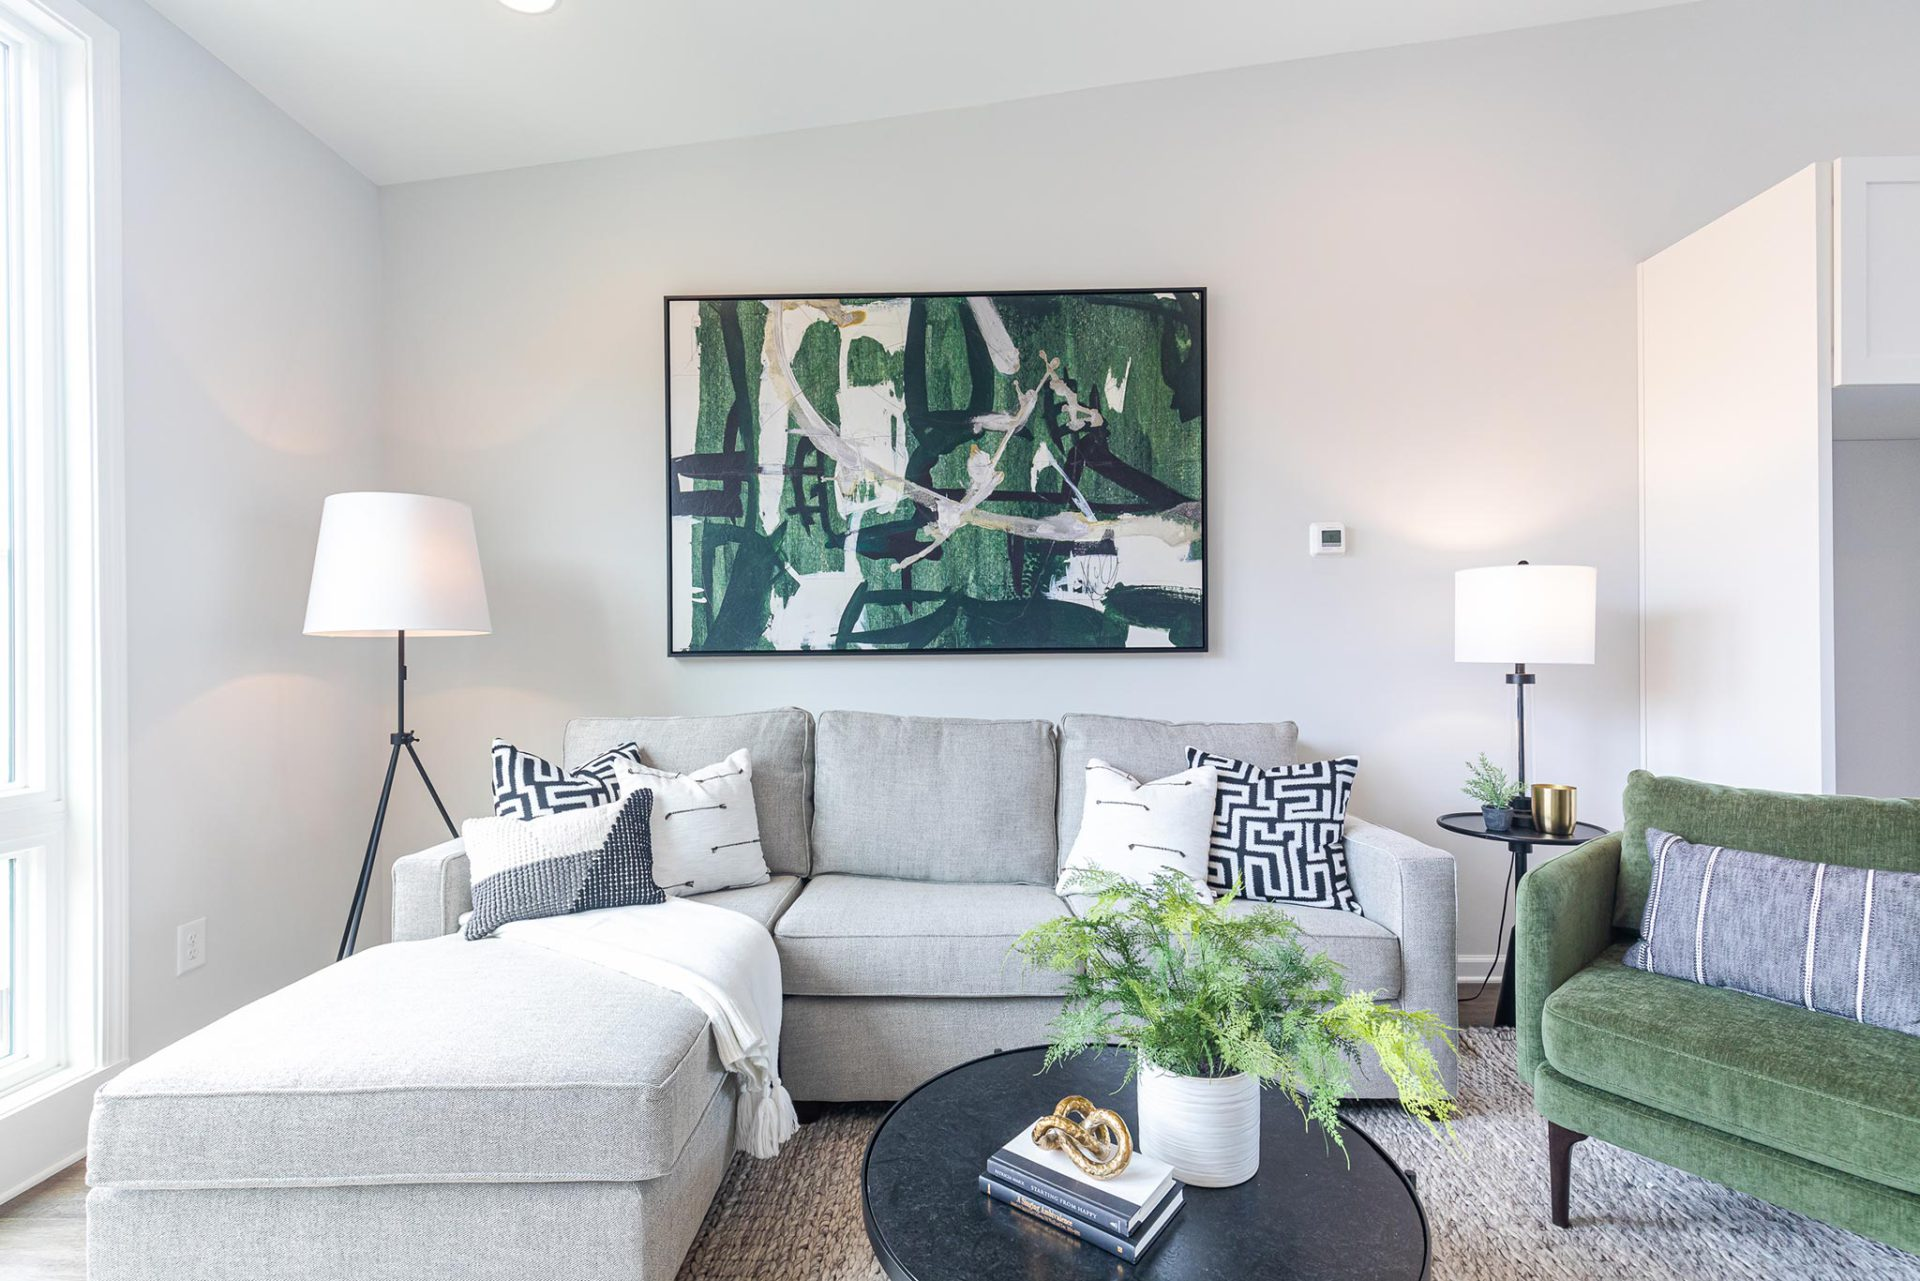 Step Inside Our Designer Townhome at 4Forty4 in Old Fourth Wardimage_block-block_5f623d97324fb